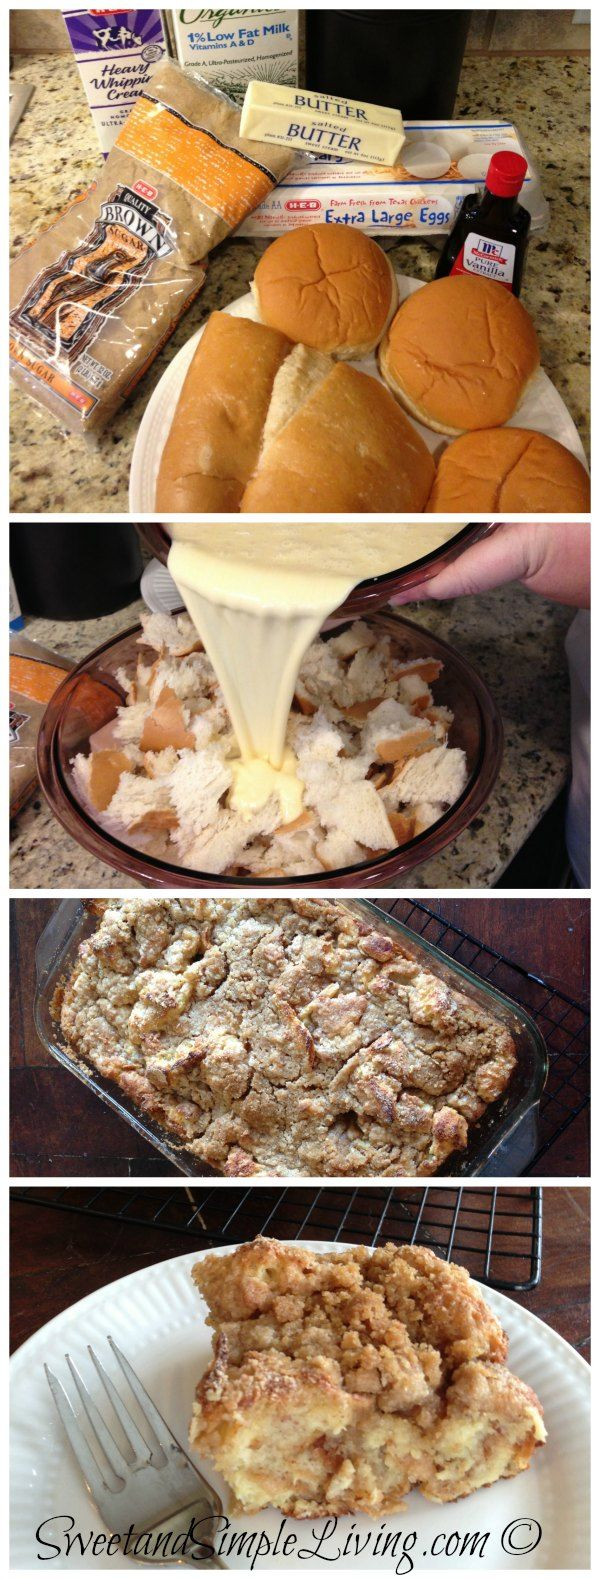 French Toast Casserole - This is more or less a basic bread pudding but with the addition of a crumb topping. Sounds good though! :D